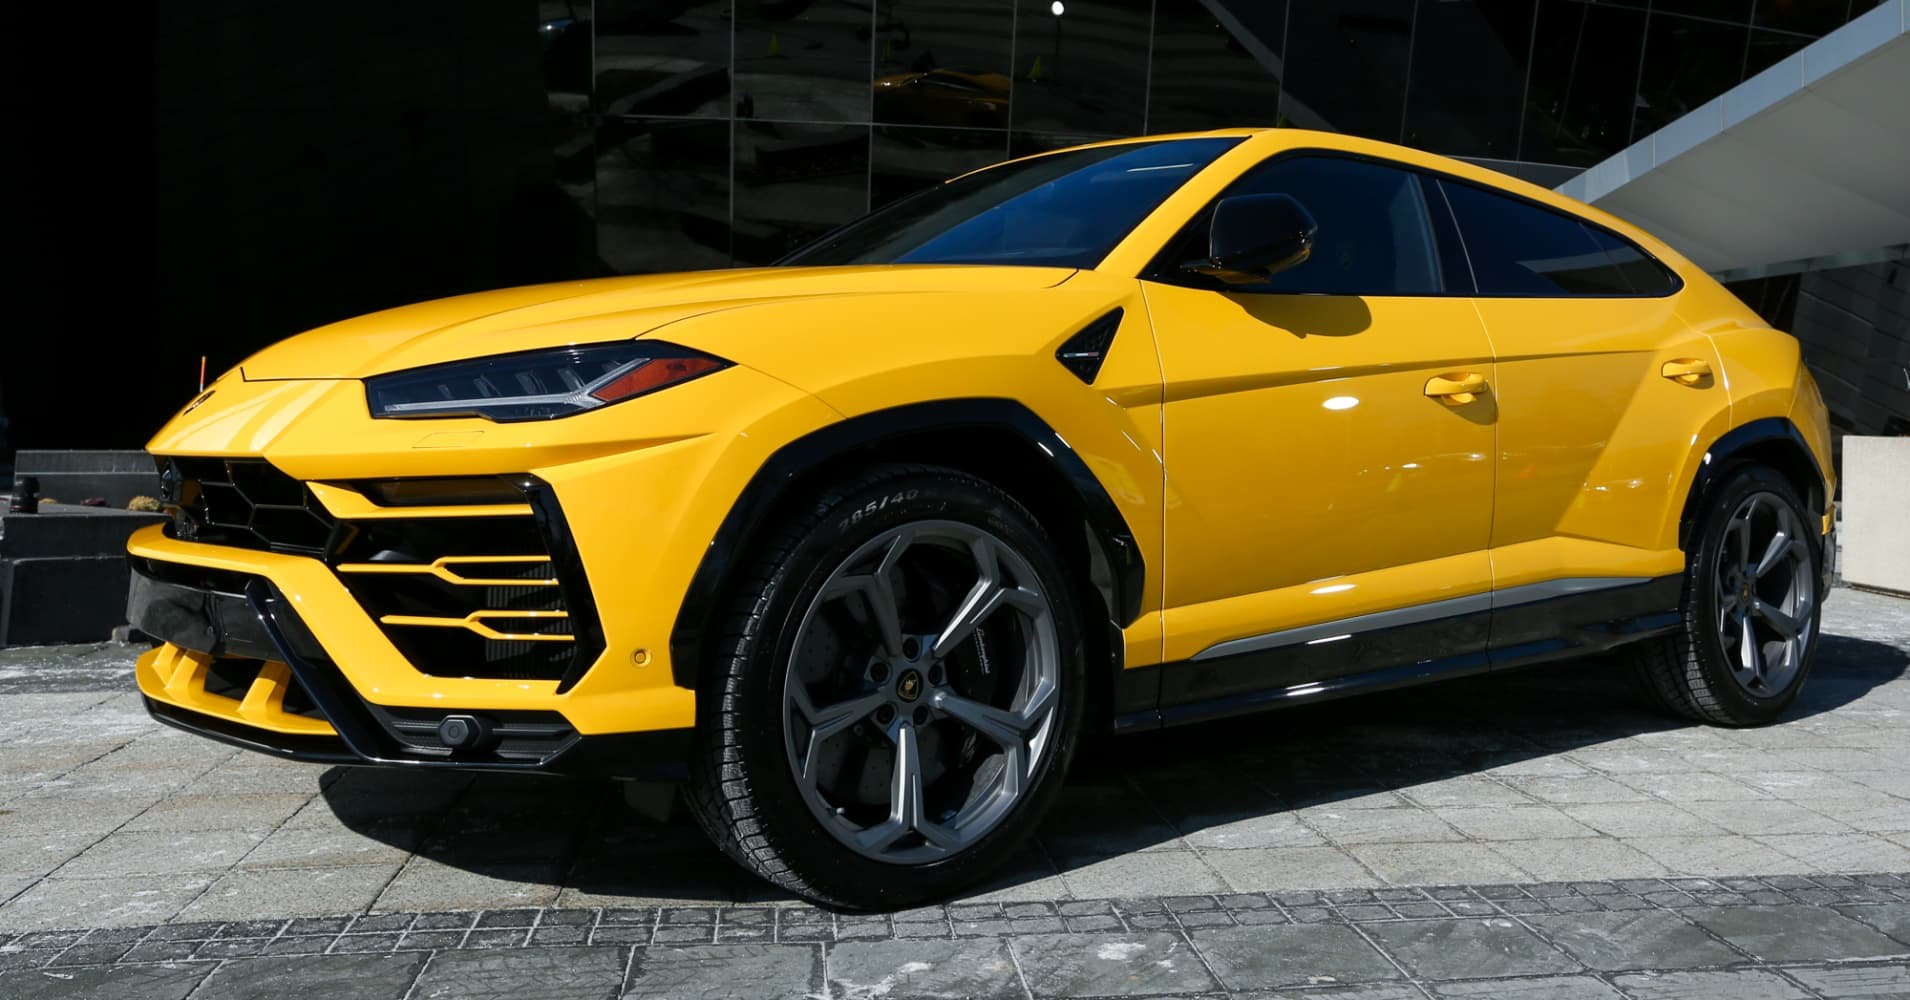 Lamborghini's new $200,000 SUV boosts automaker's sales by 51 percent in 2018